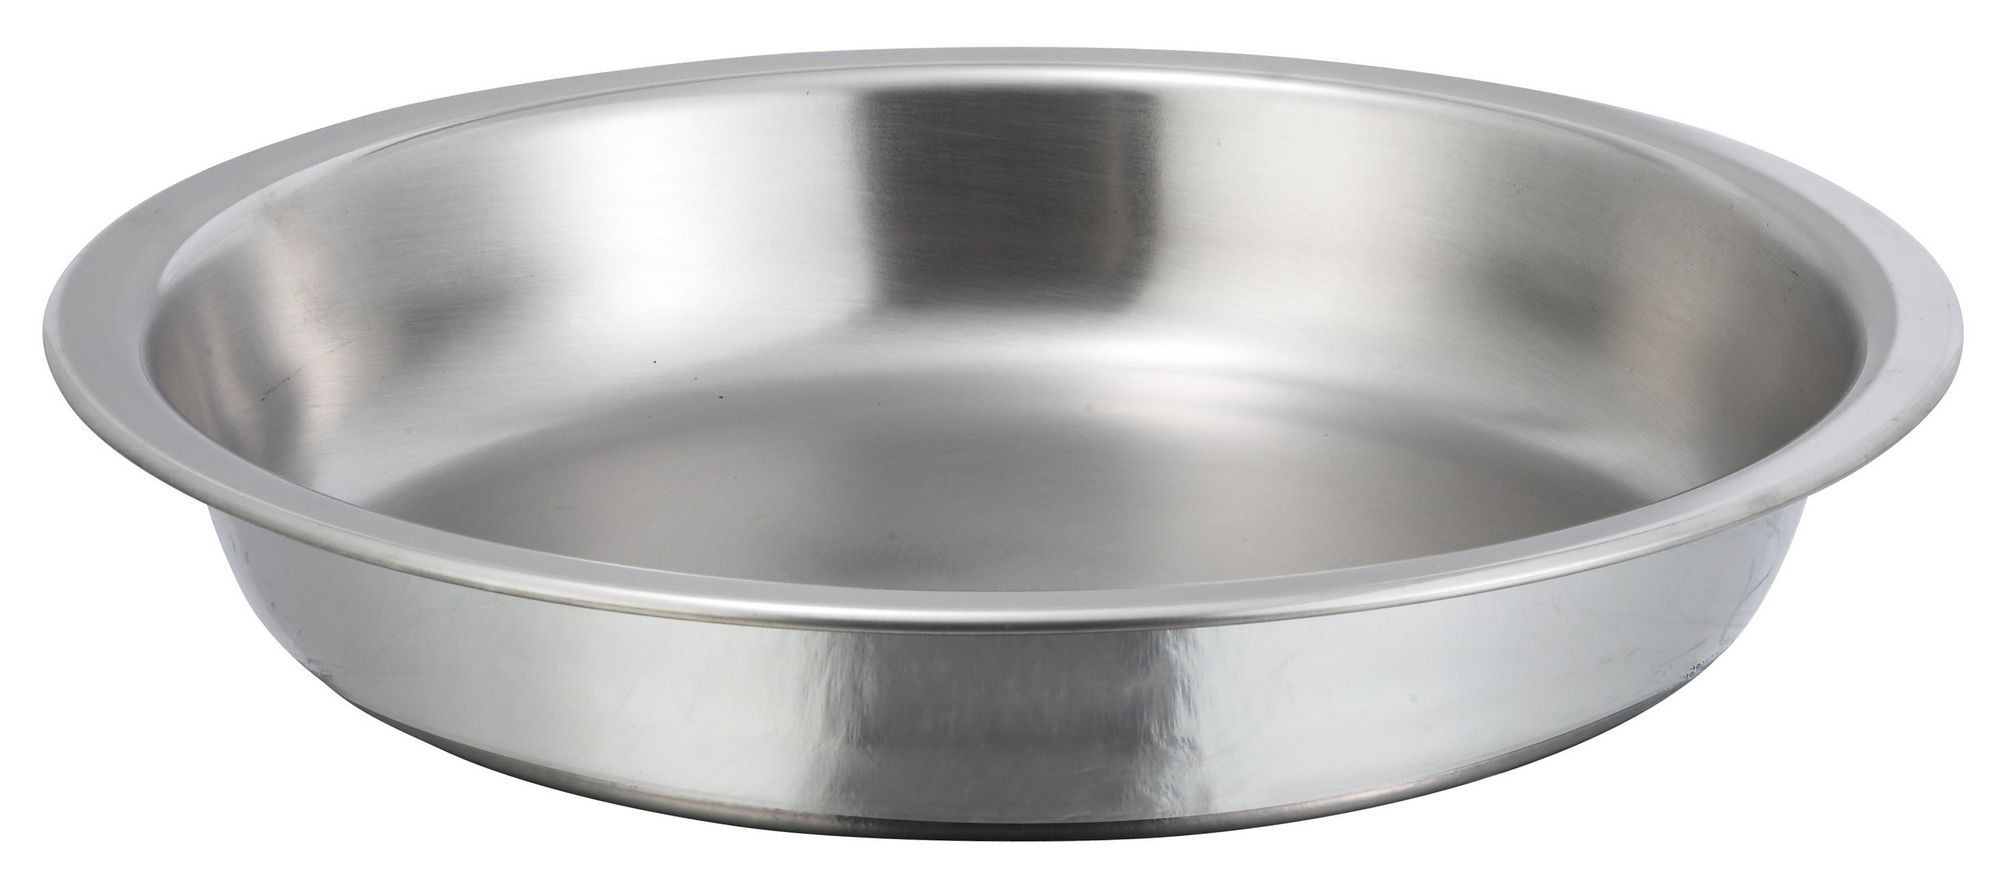 Winco 203-FP Food Pan for 4 Qt. Gold Accented Malibu Round Chafer 203